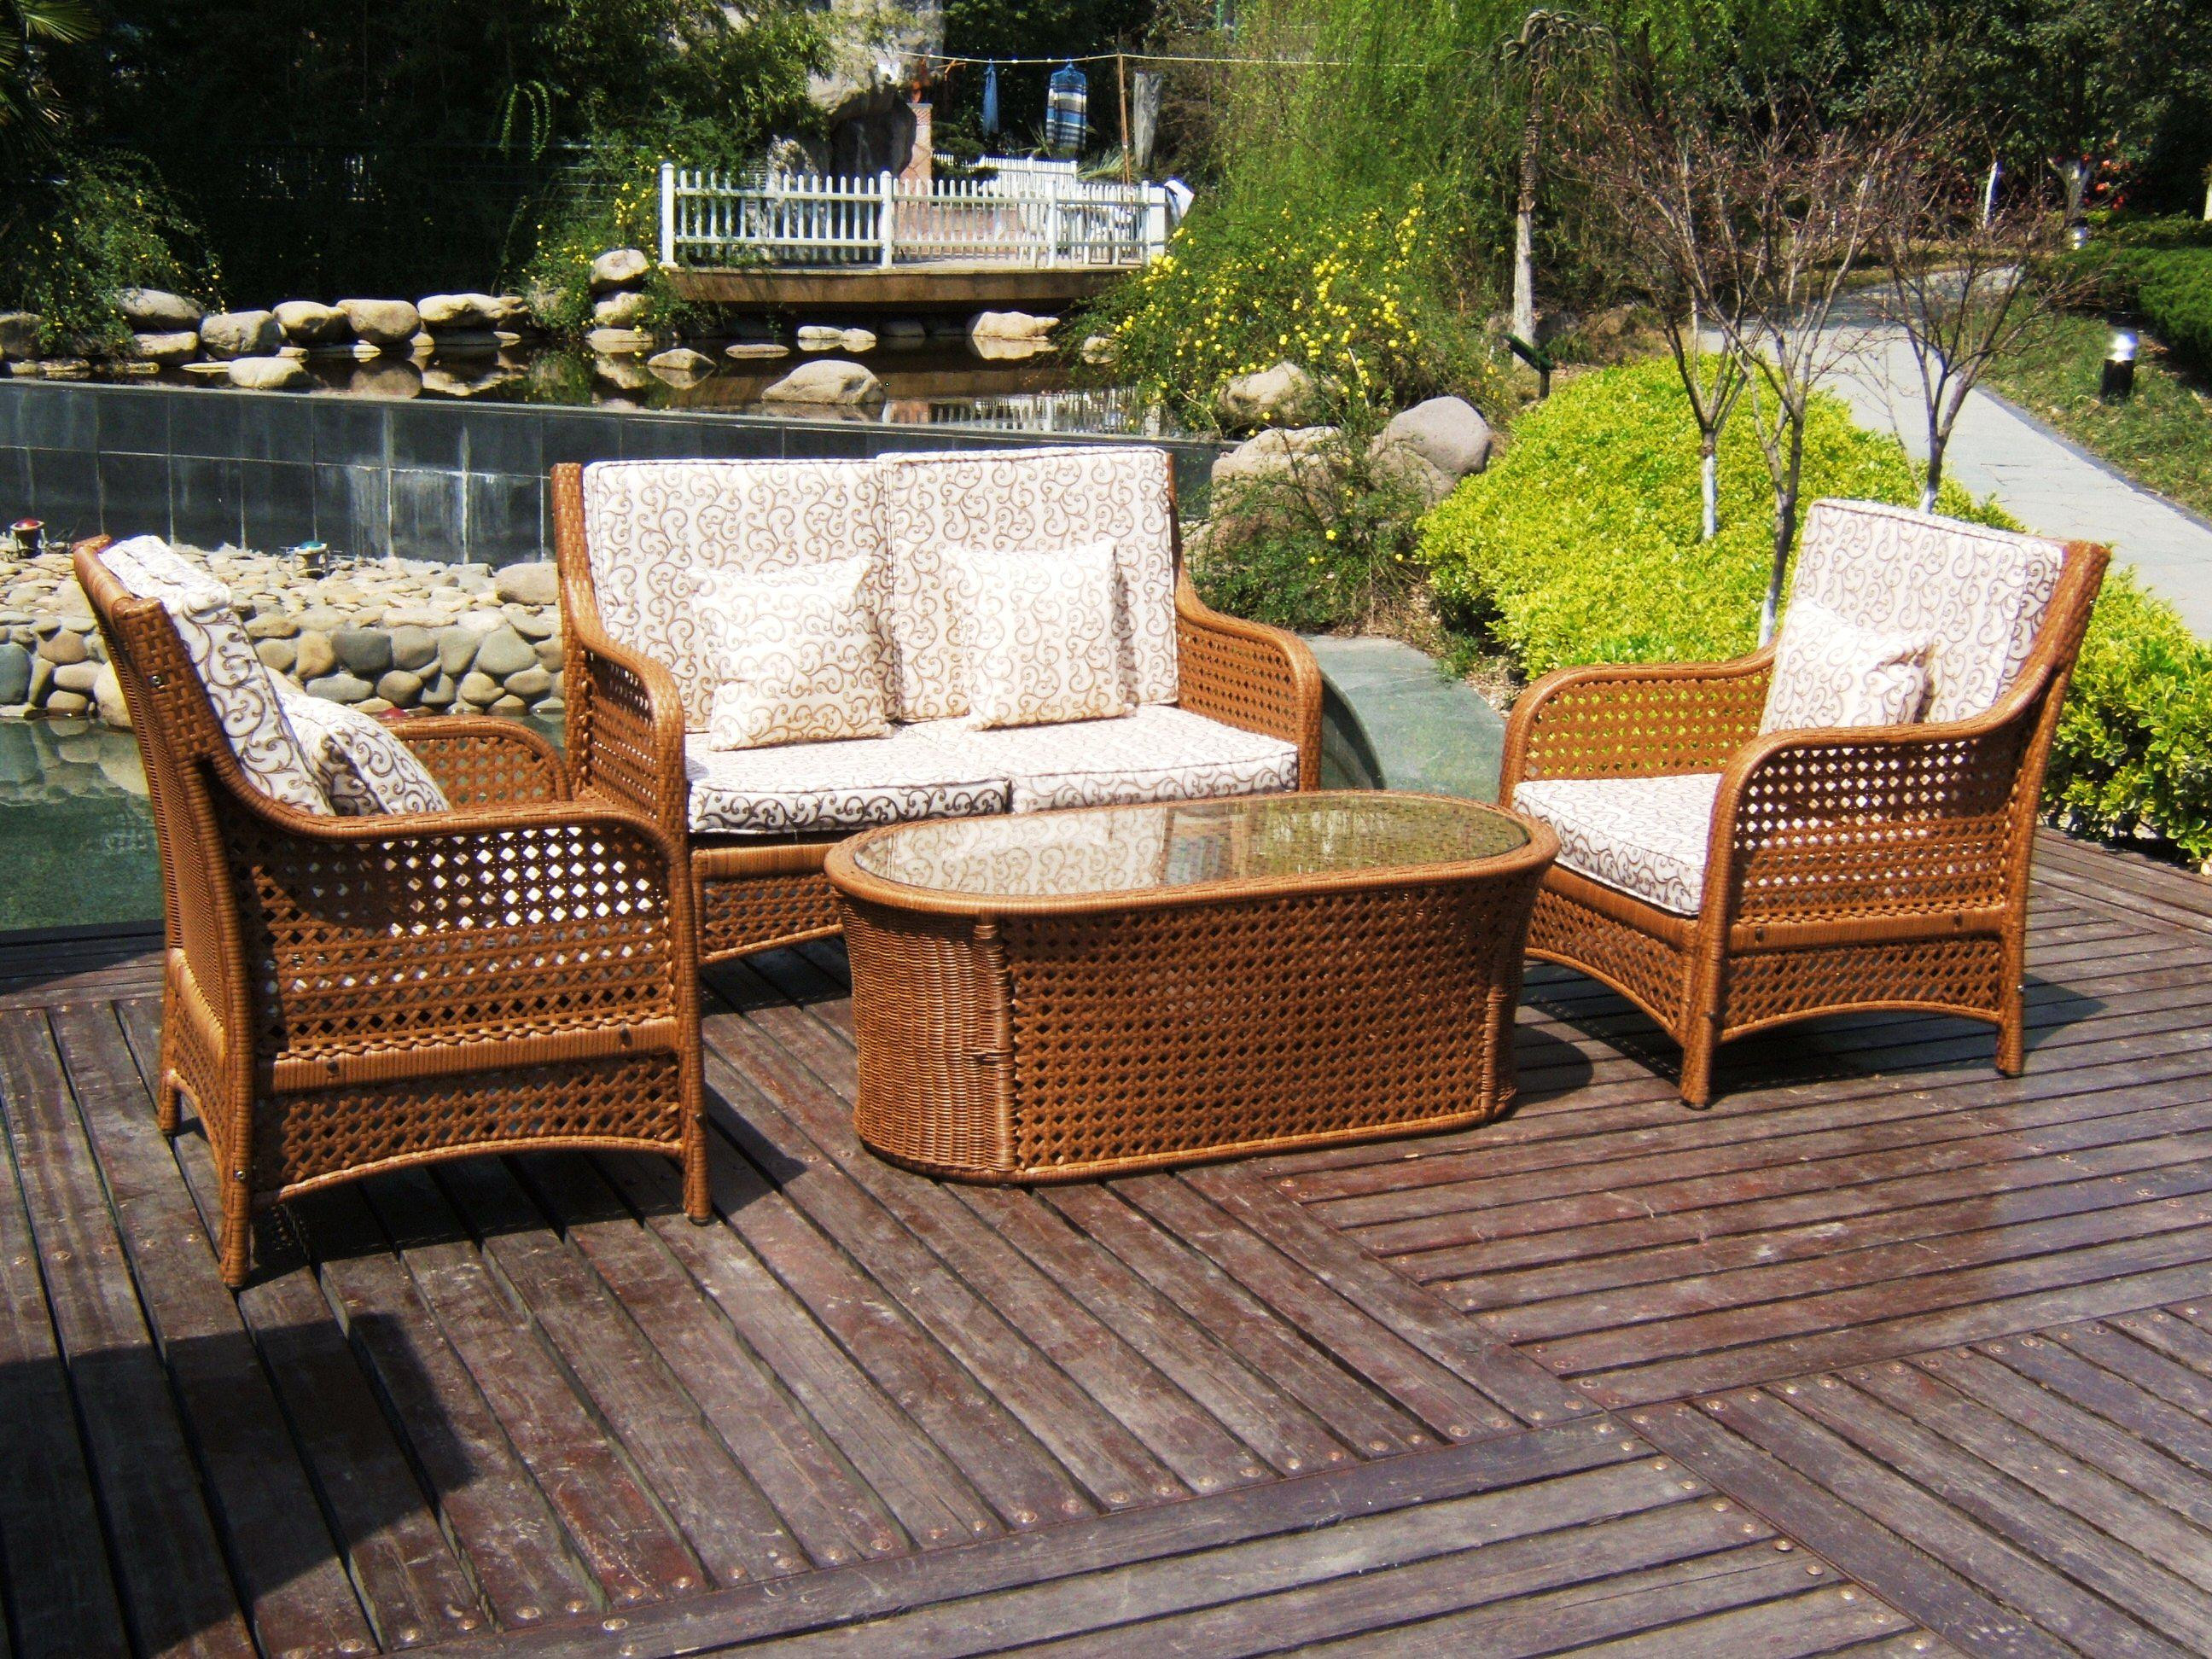 20 Ideas for Lowes Outdoor Patio Furniture - Best ... on Lowes Patio Design id=27317